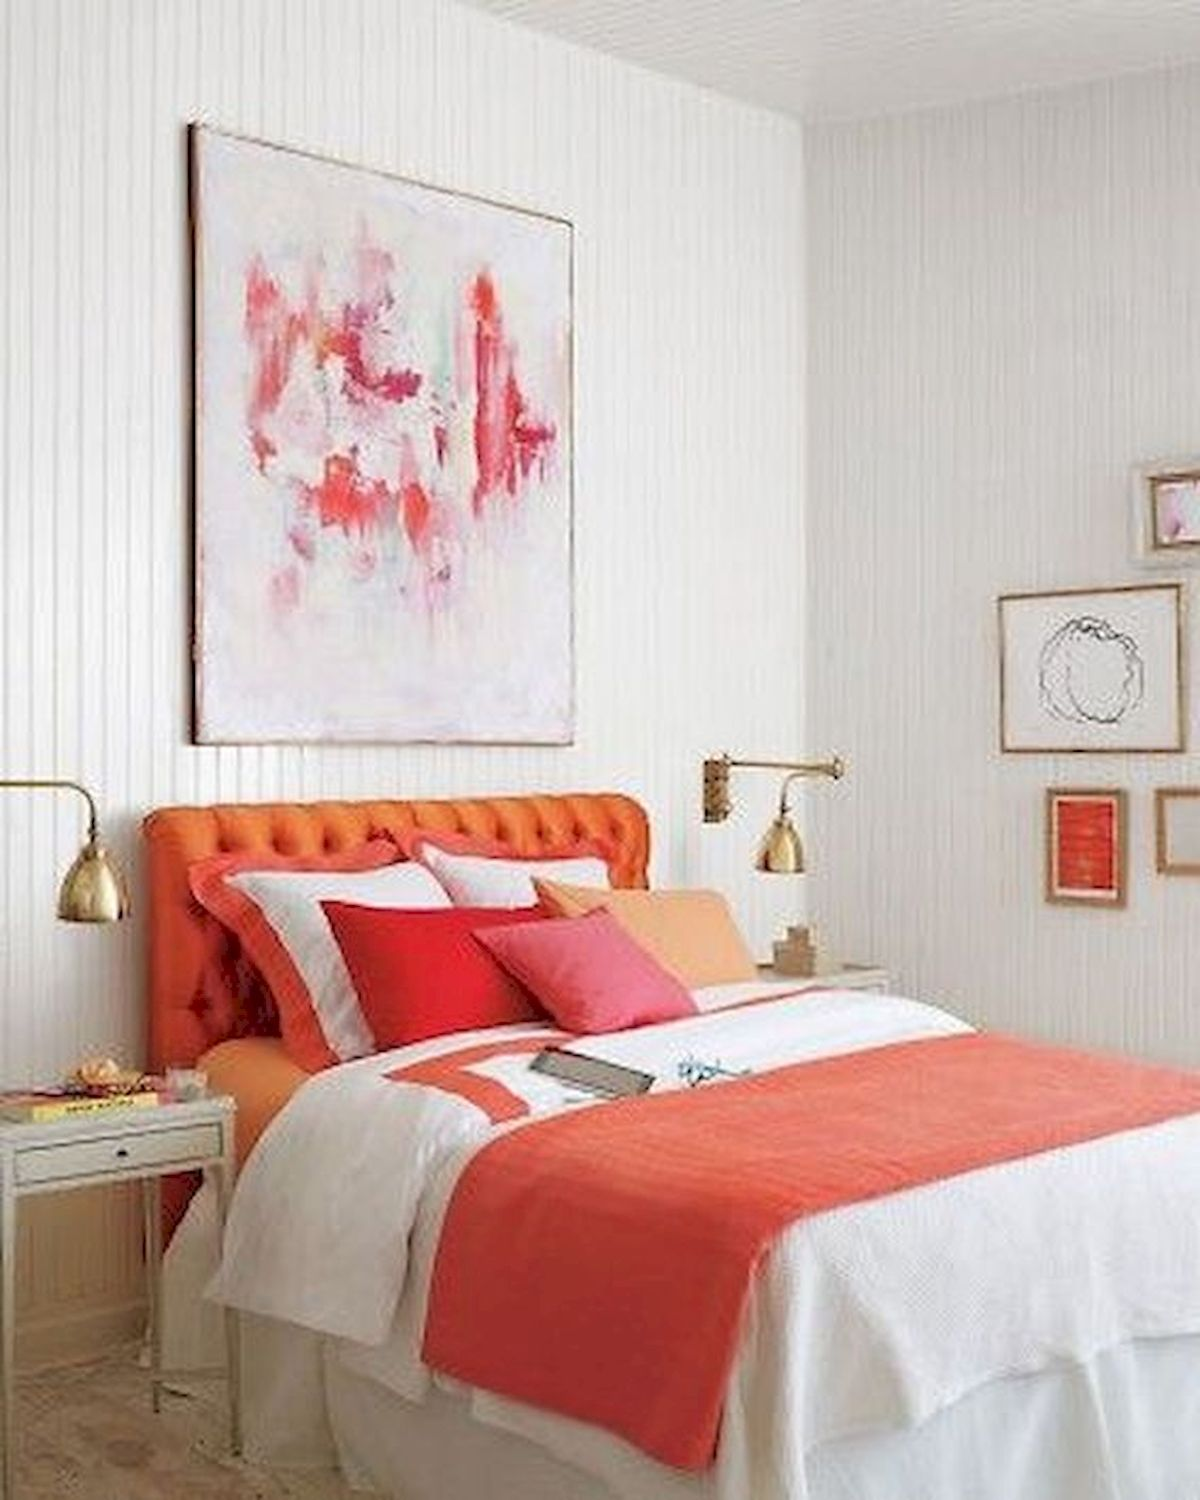 70 Awesome Colorful Bedroom Design Ideas and Remodel (25)